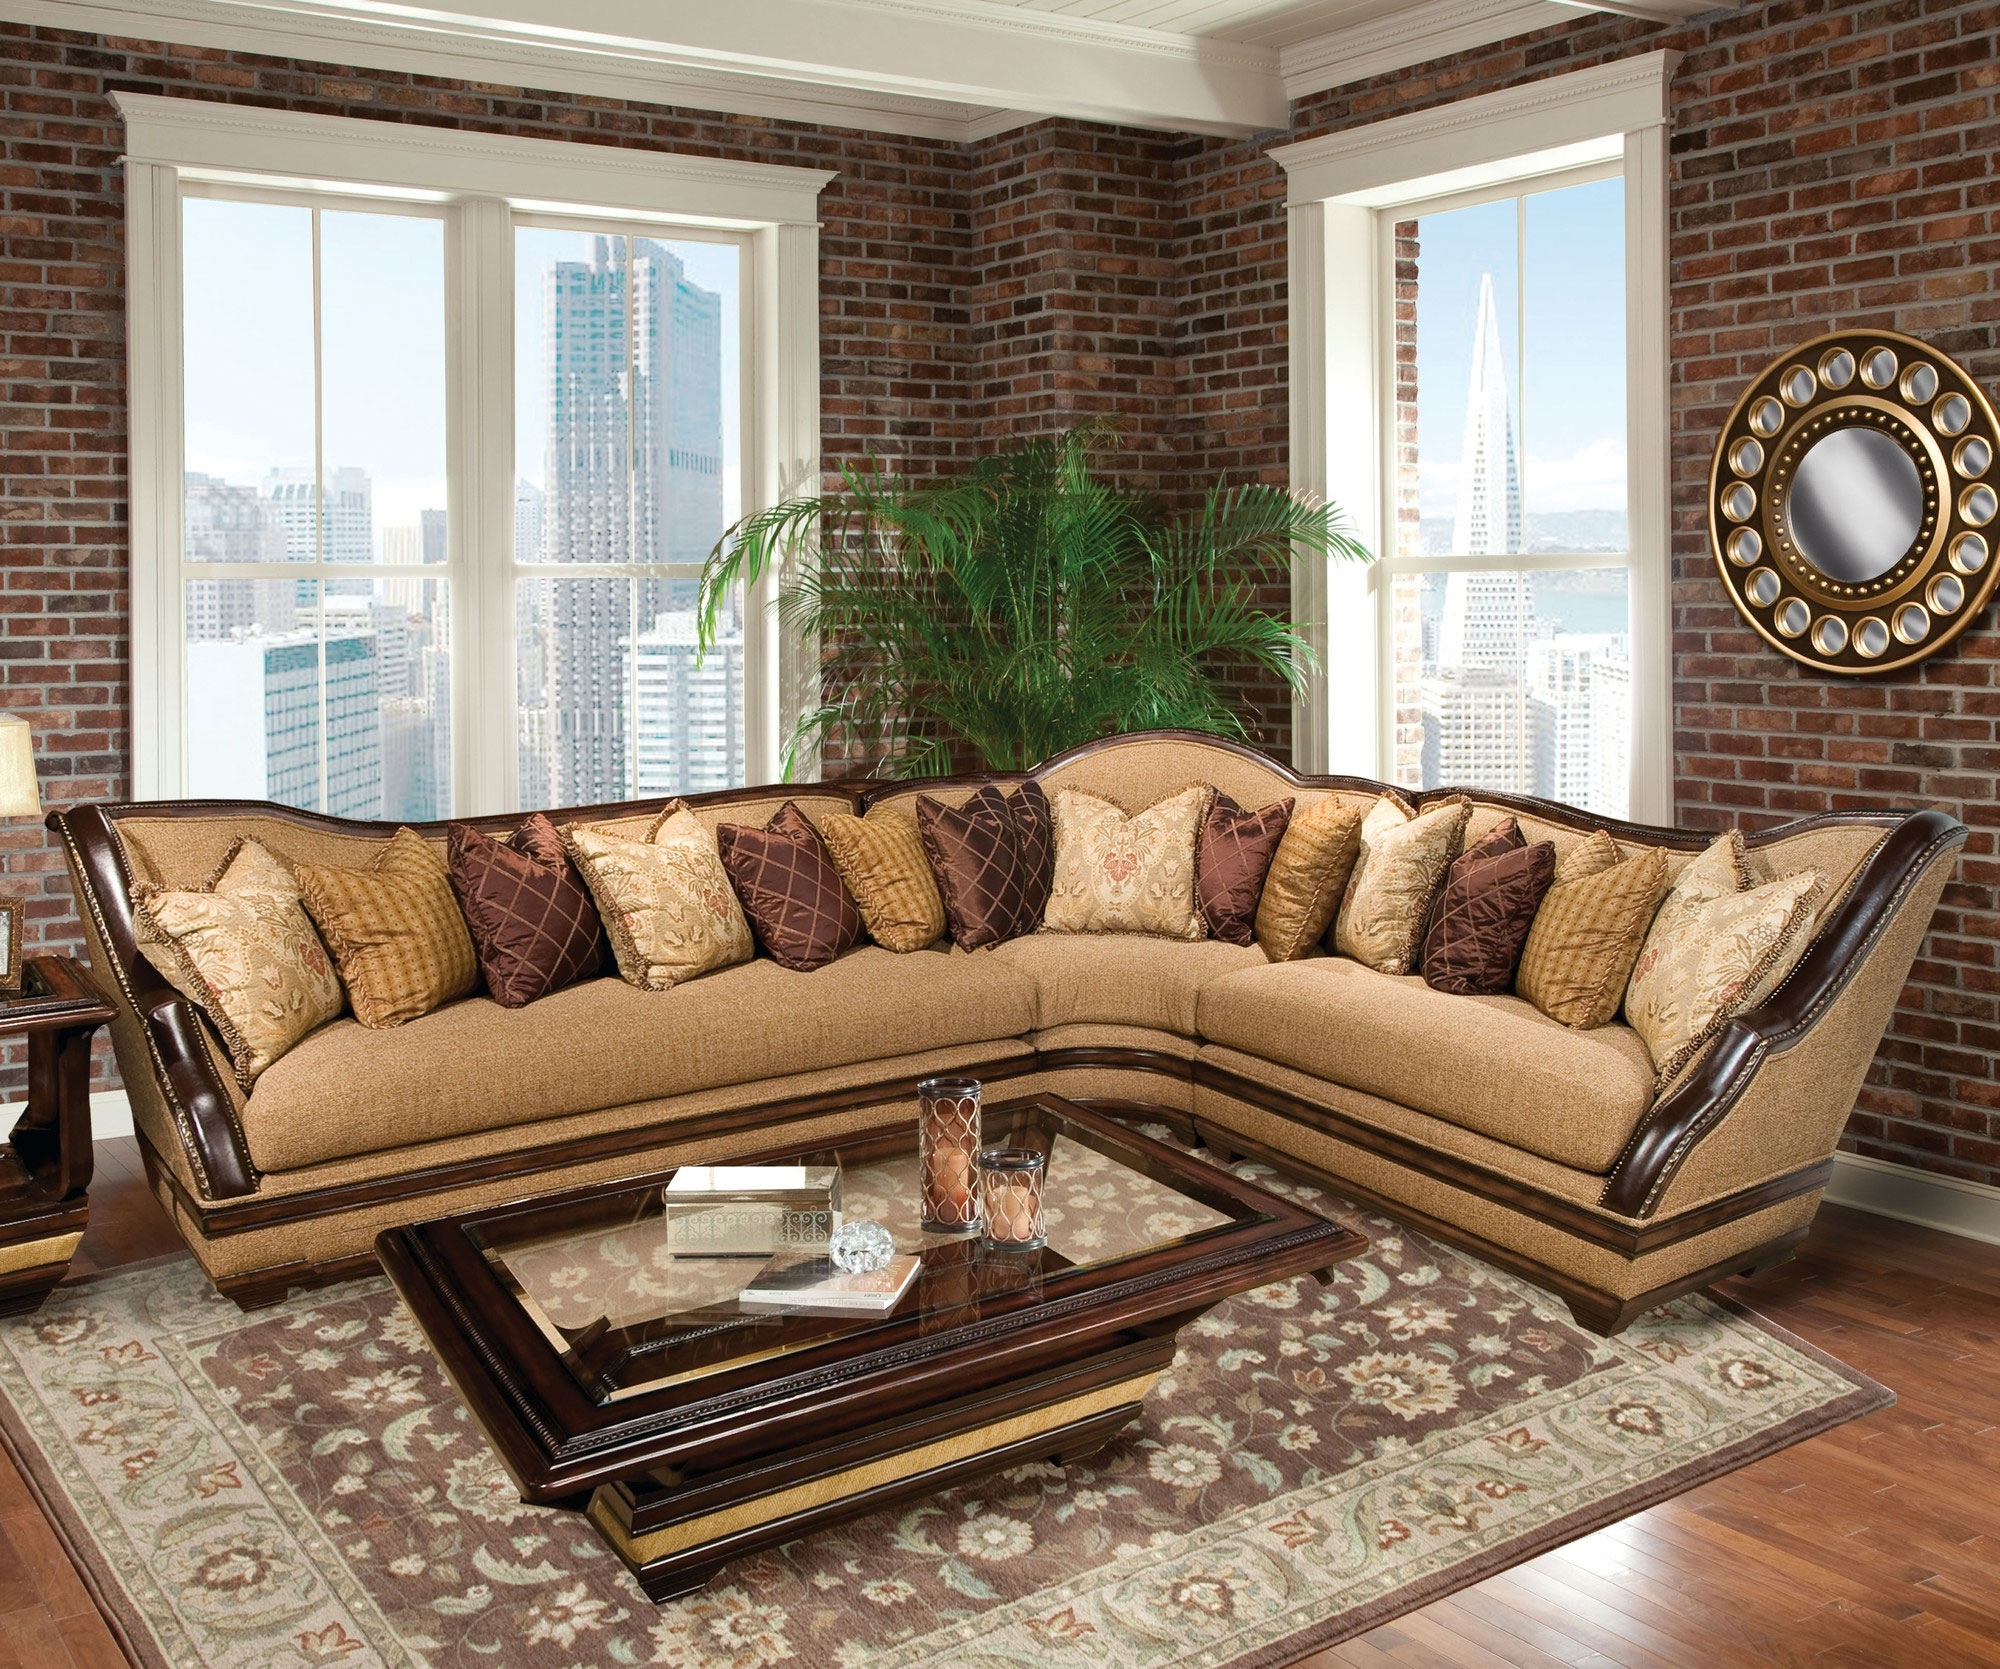 Luxury Sectional Sofas Regarding Most Current Benetti's Italia Beladonna Wood Trim Sectional Sofa Set The (View 2 of 20)